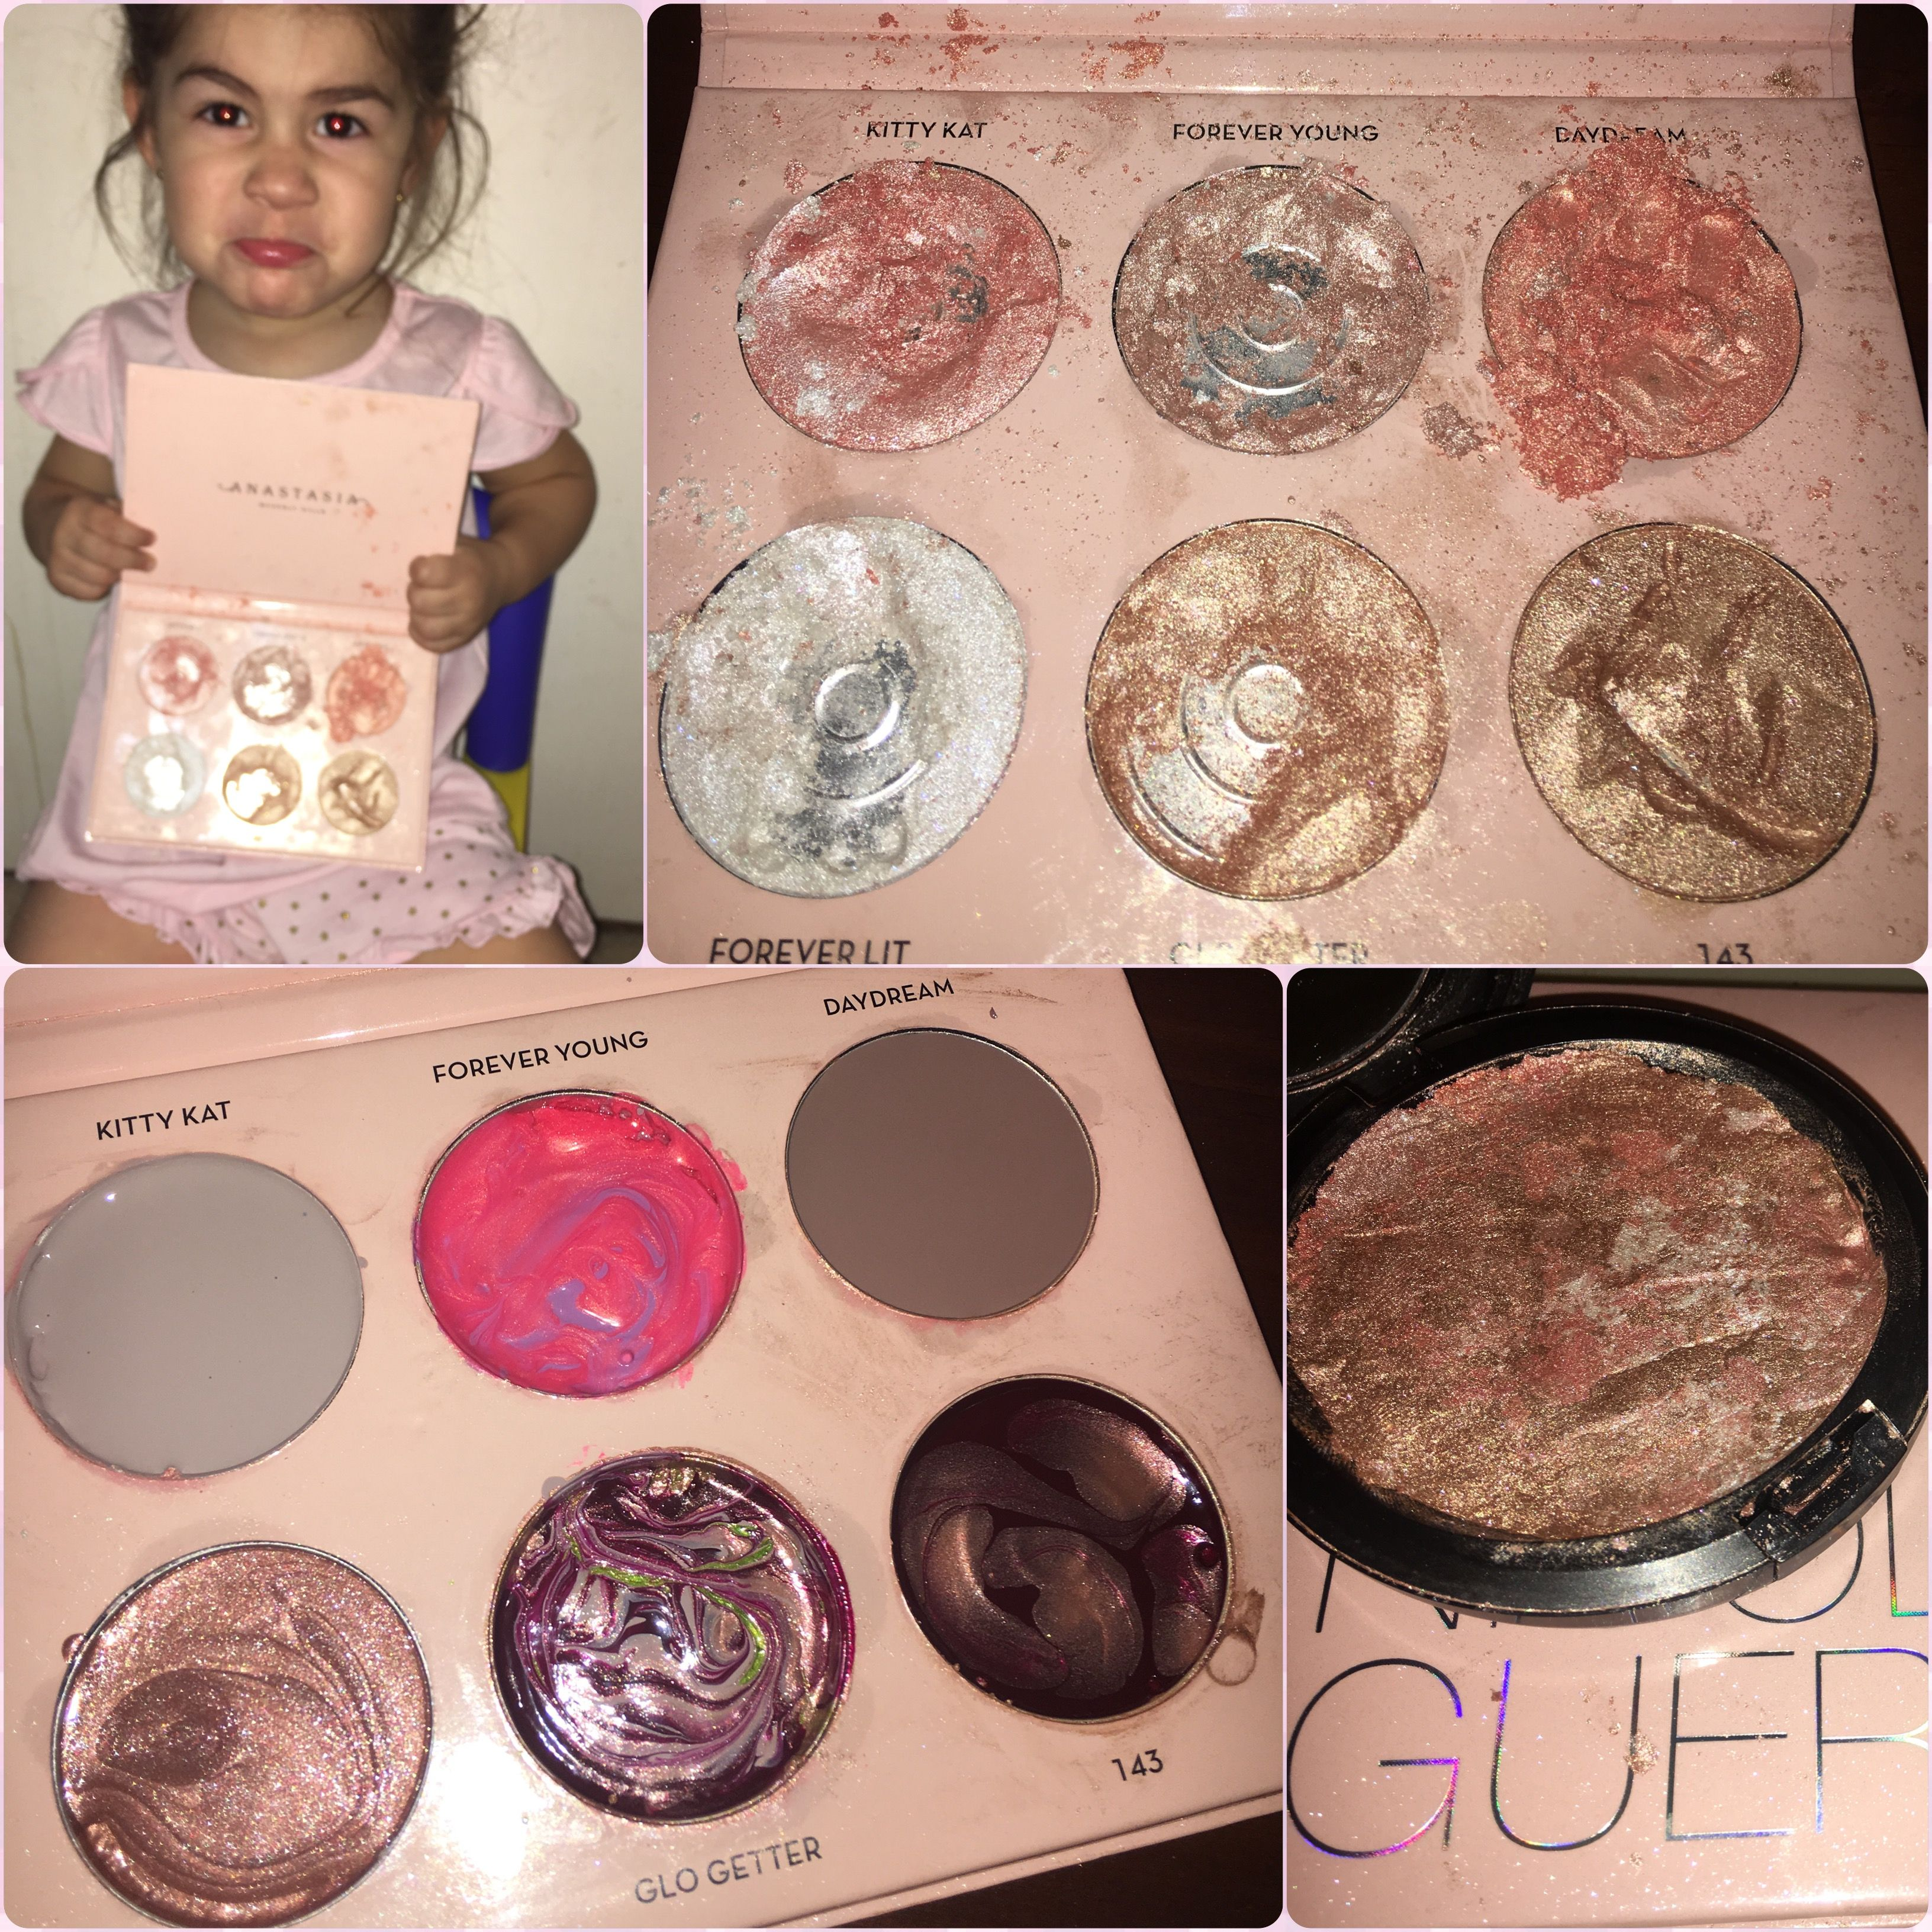 My Toddler Destroyed My ABHXNICOLEGUERRIERO Glow Kit! I